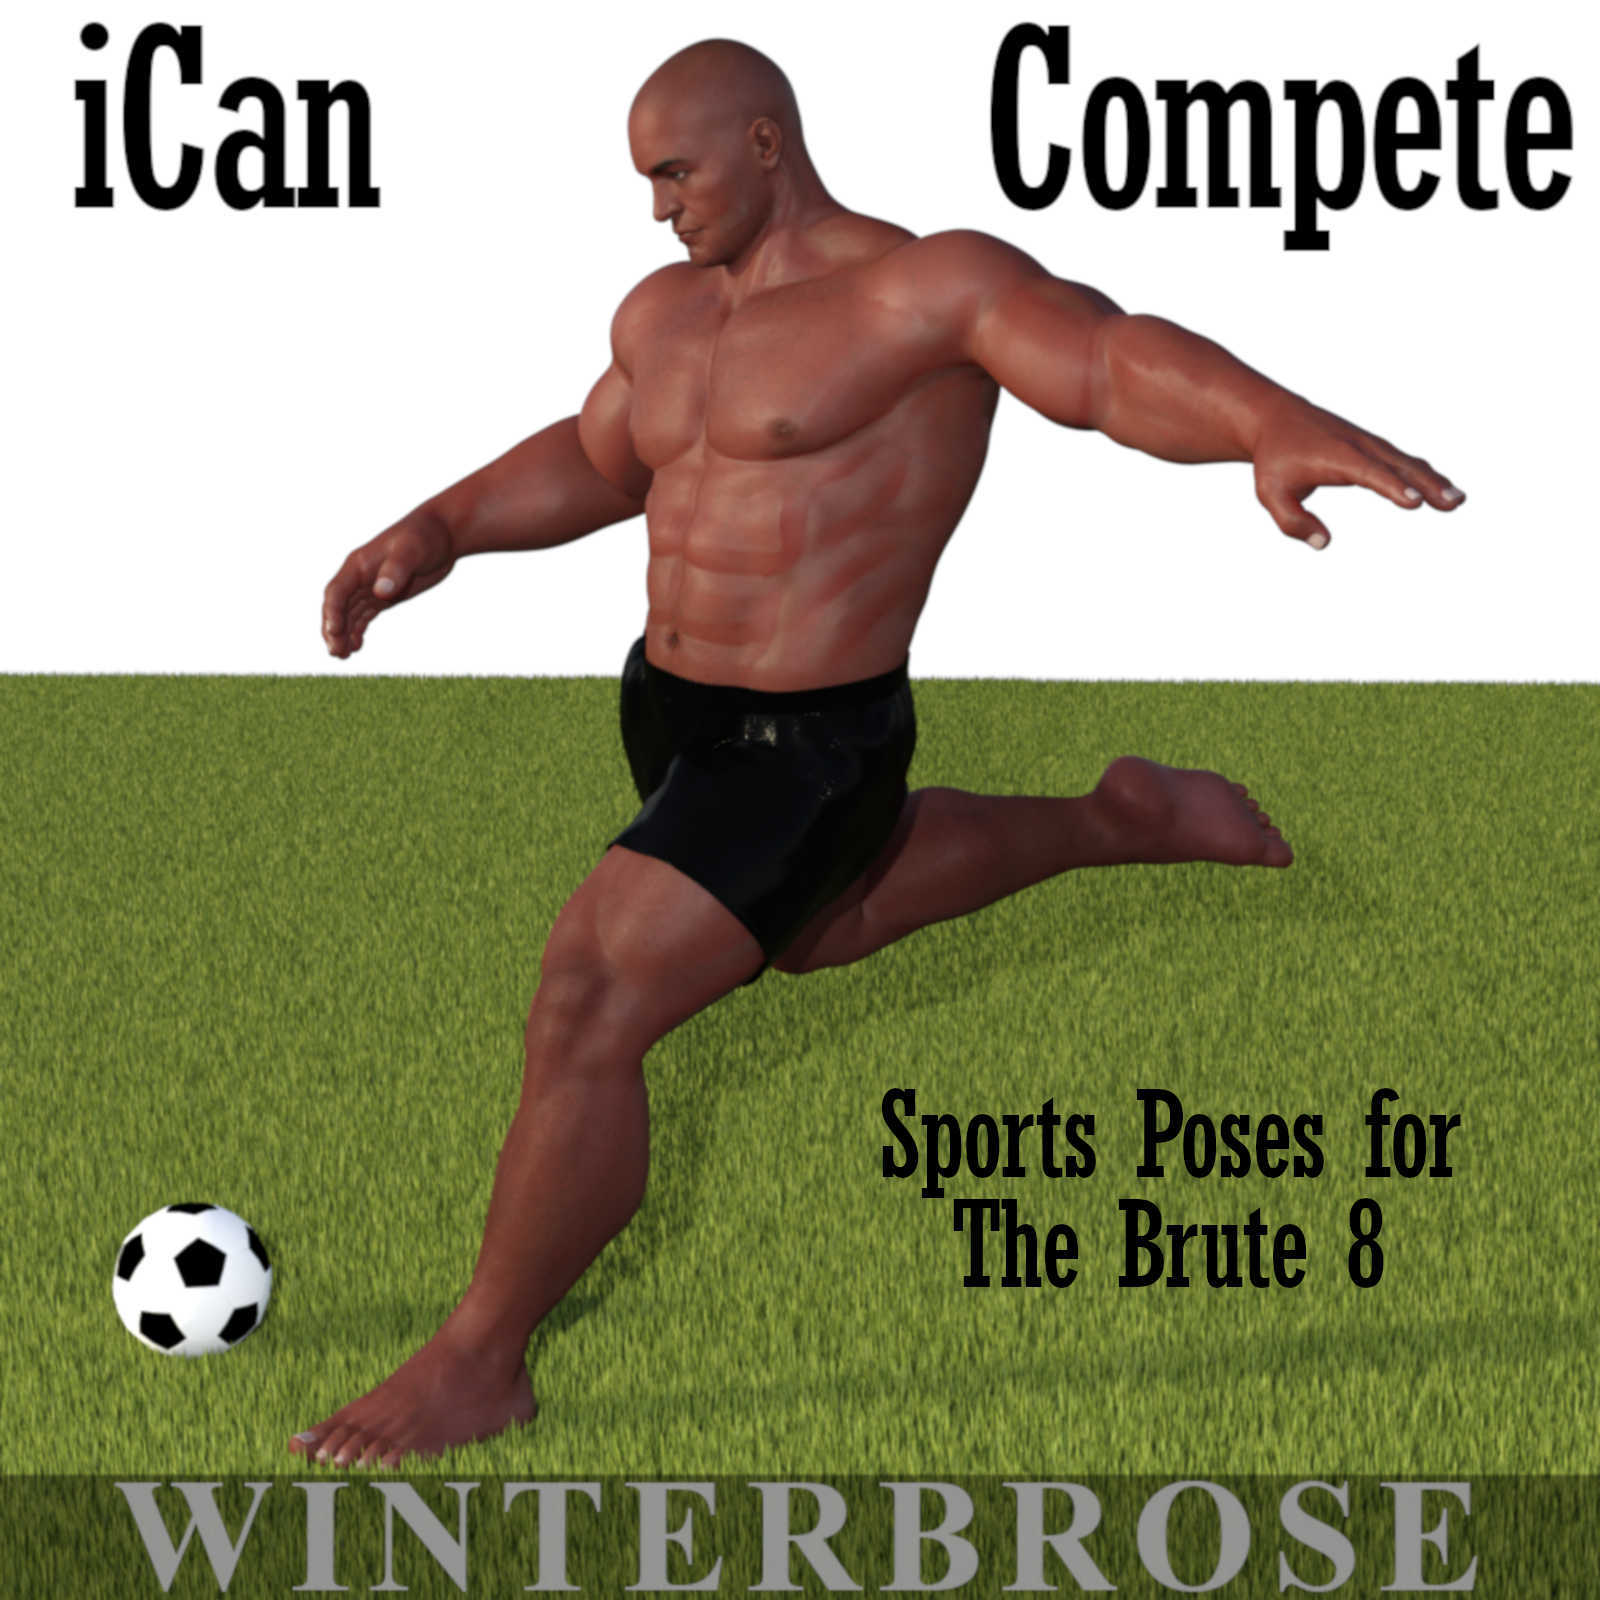 iCan COMPETE Sports Poses for The Brute 8